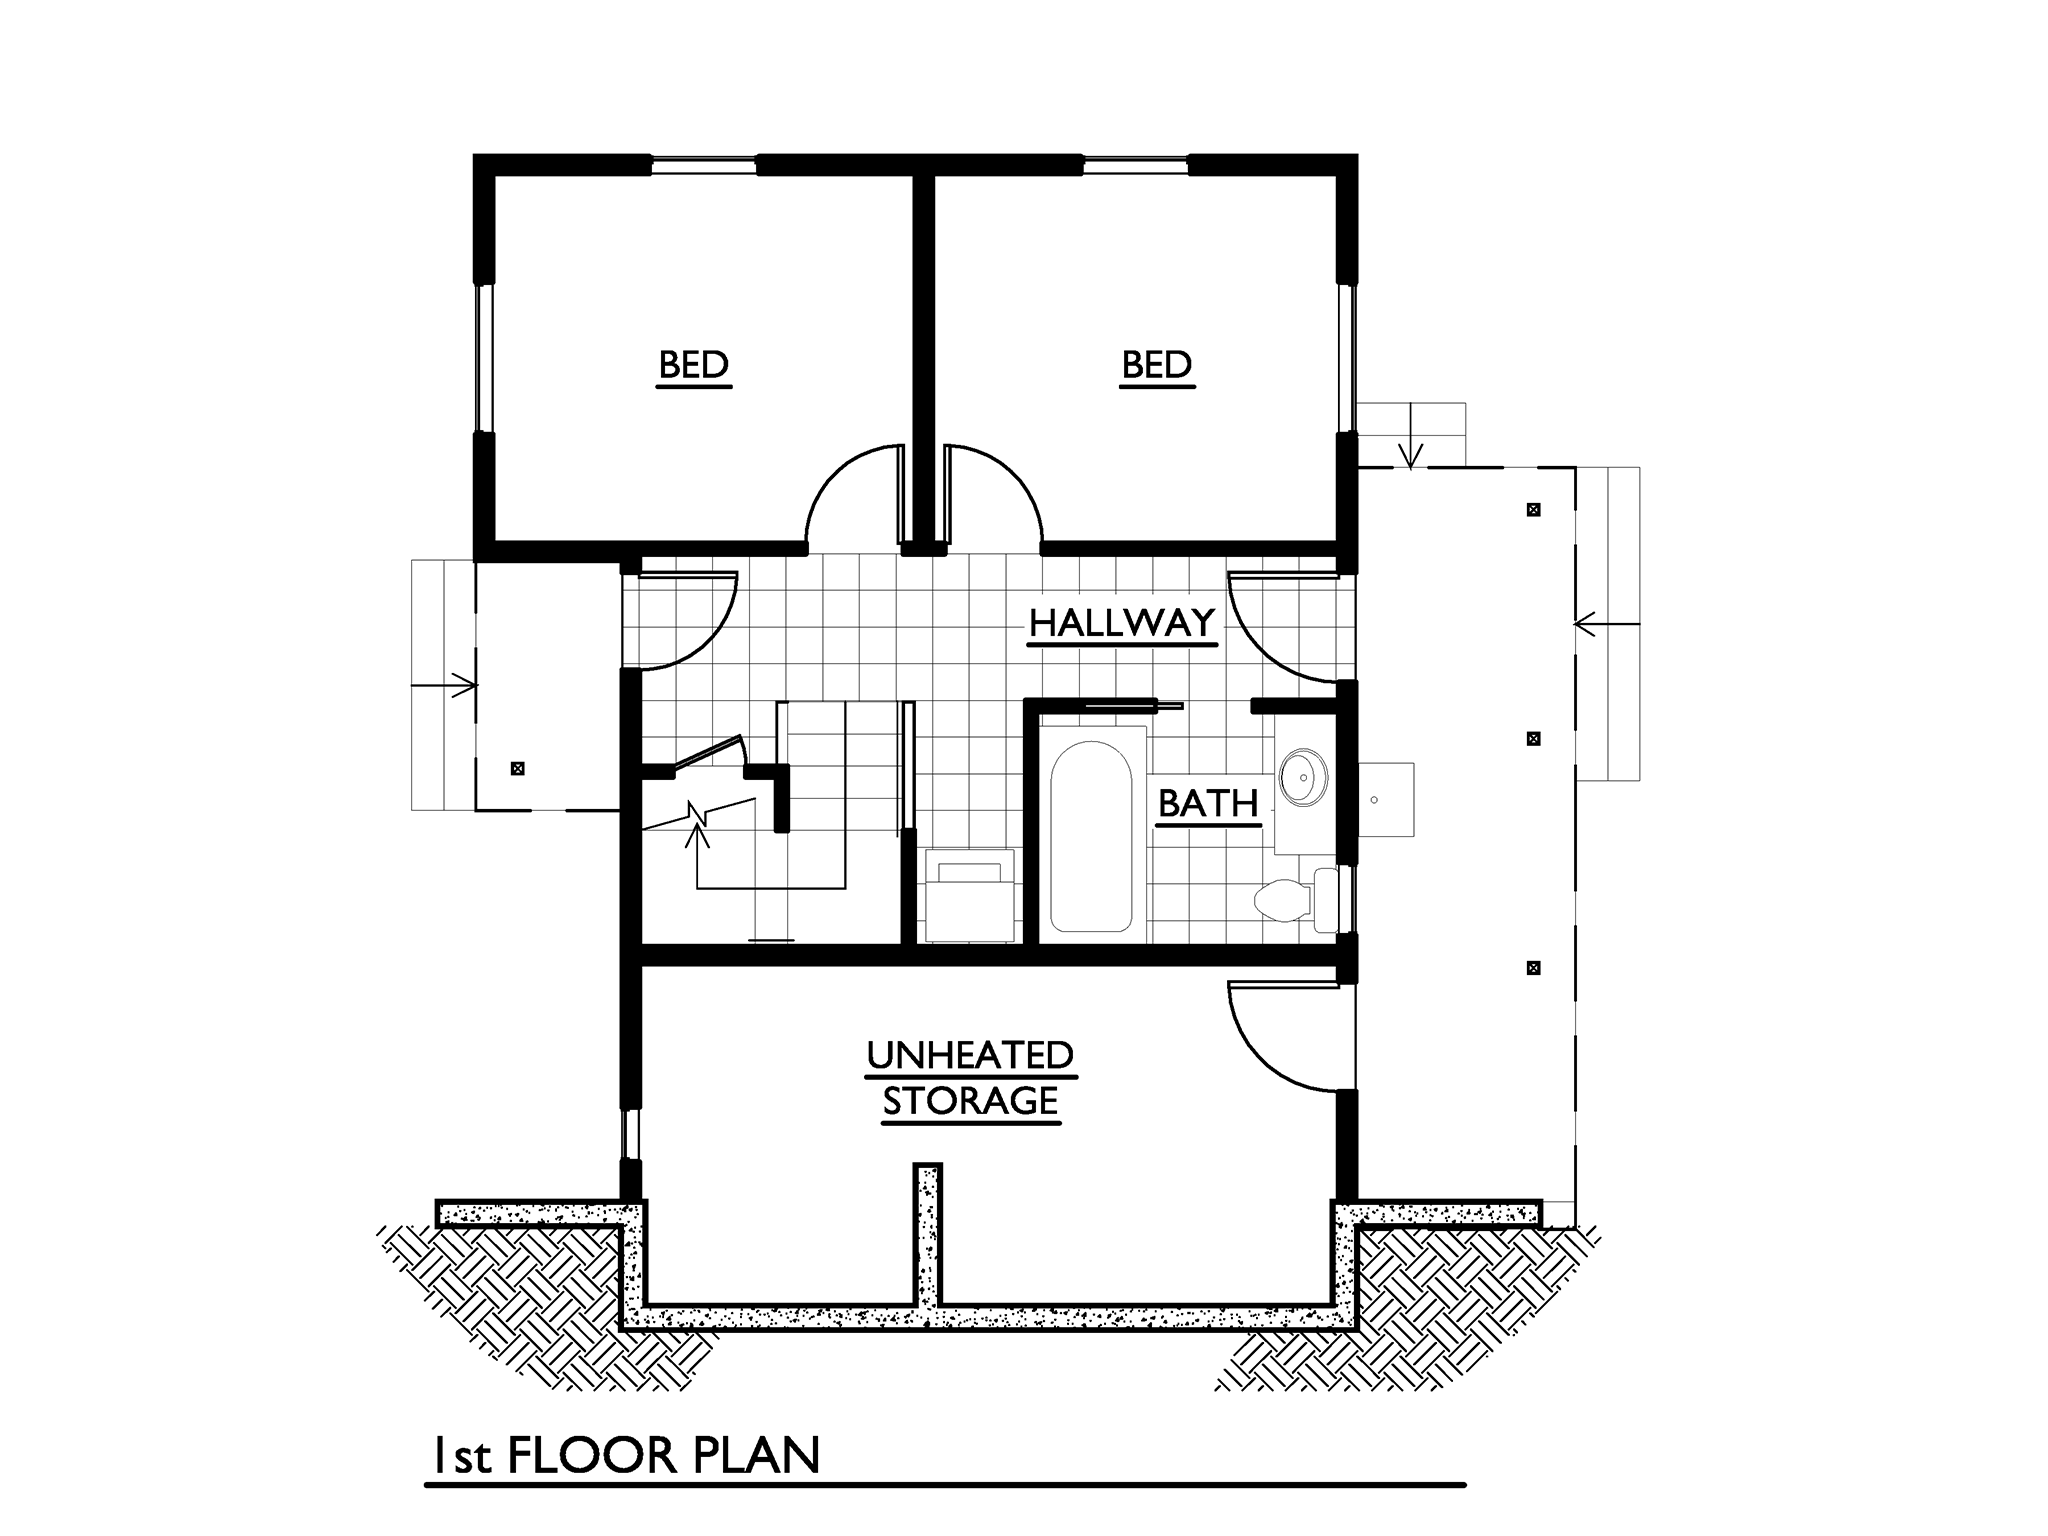 cottage 2 storey 2 bedrooms plan (5)